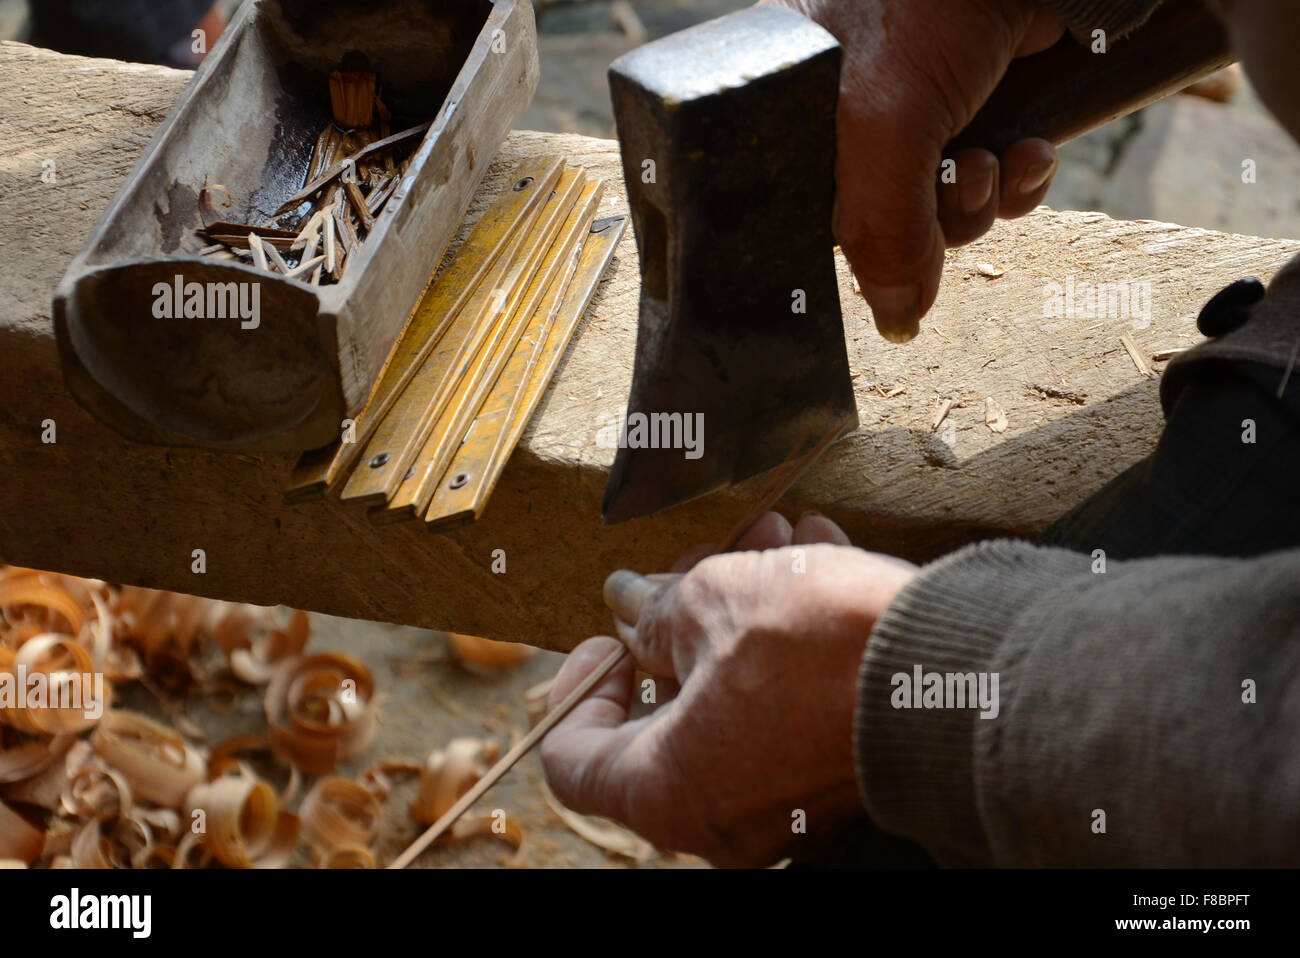 Industrializing Stockfotos & Industrializing Bilder - Alamy